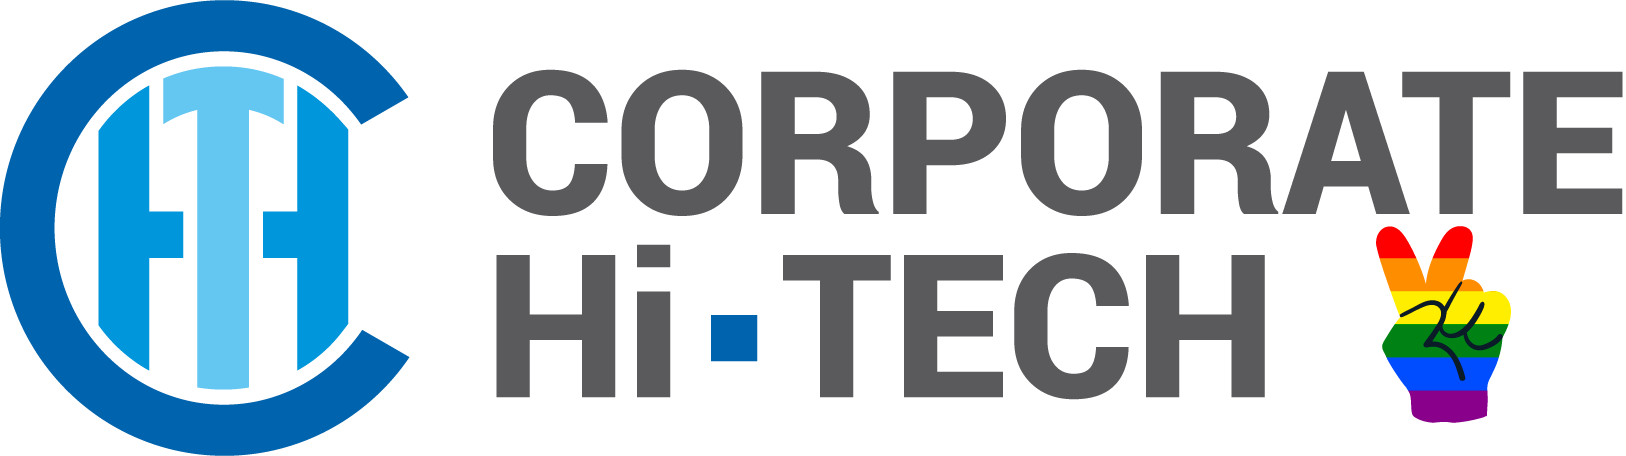 Corporate Hi-Tech Logo